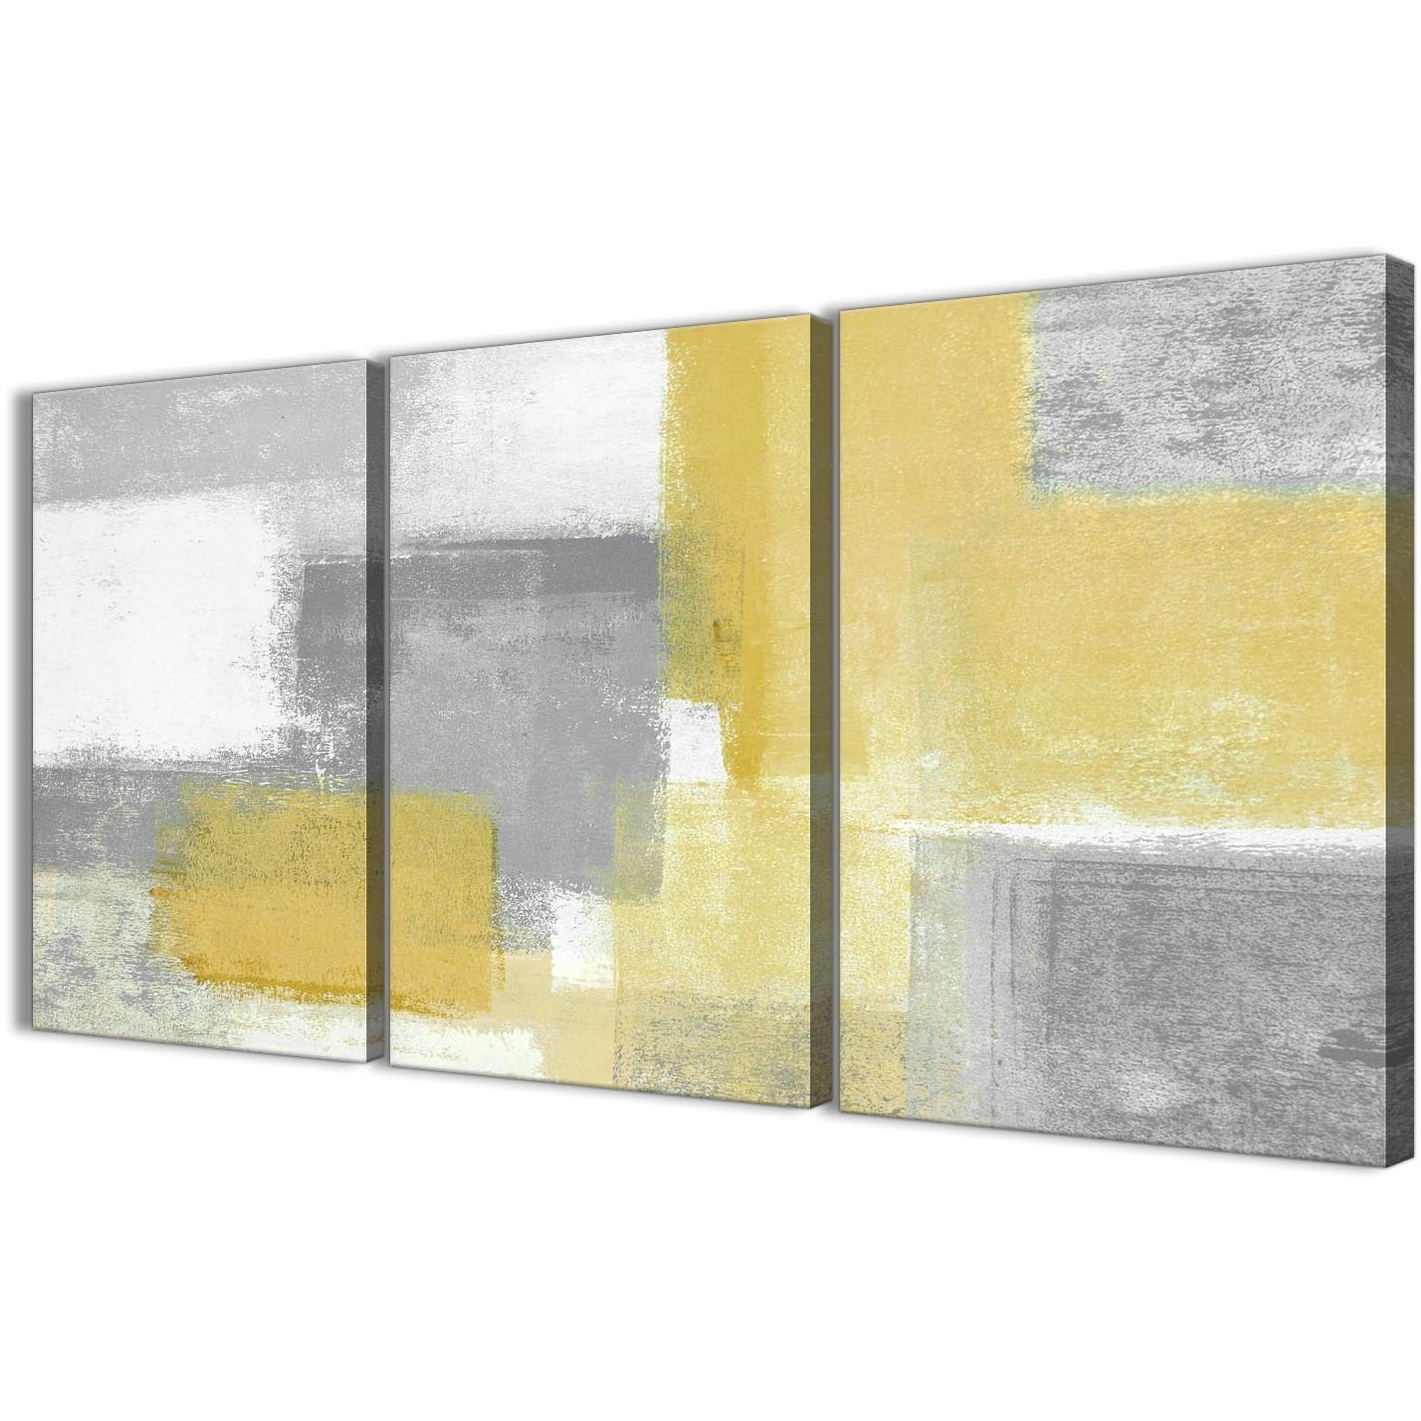 3 Panel Mustard Yellow Grey Kitchen Canvas Wall Art Decor – Abstract For Most Recently Released Yellow Wall Art (View 3 of 15)